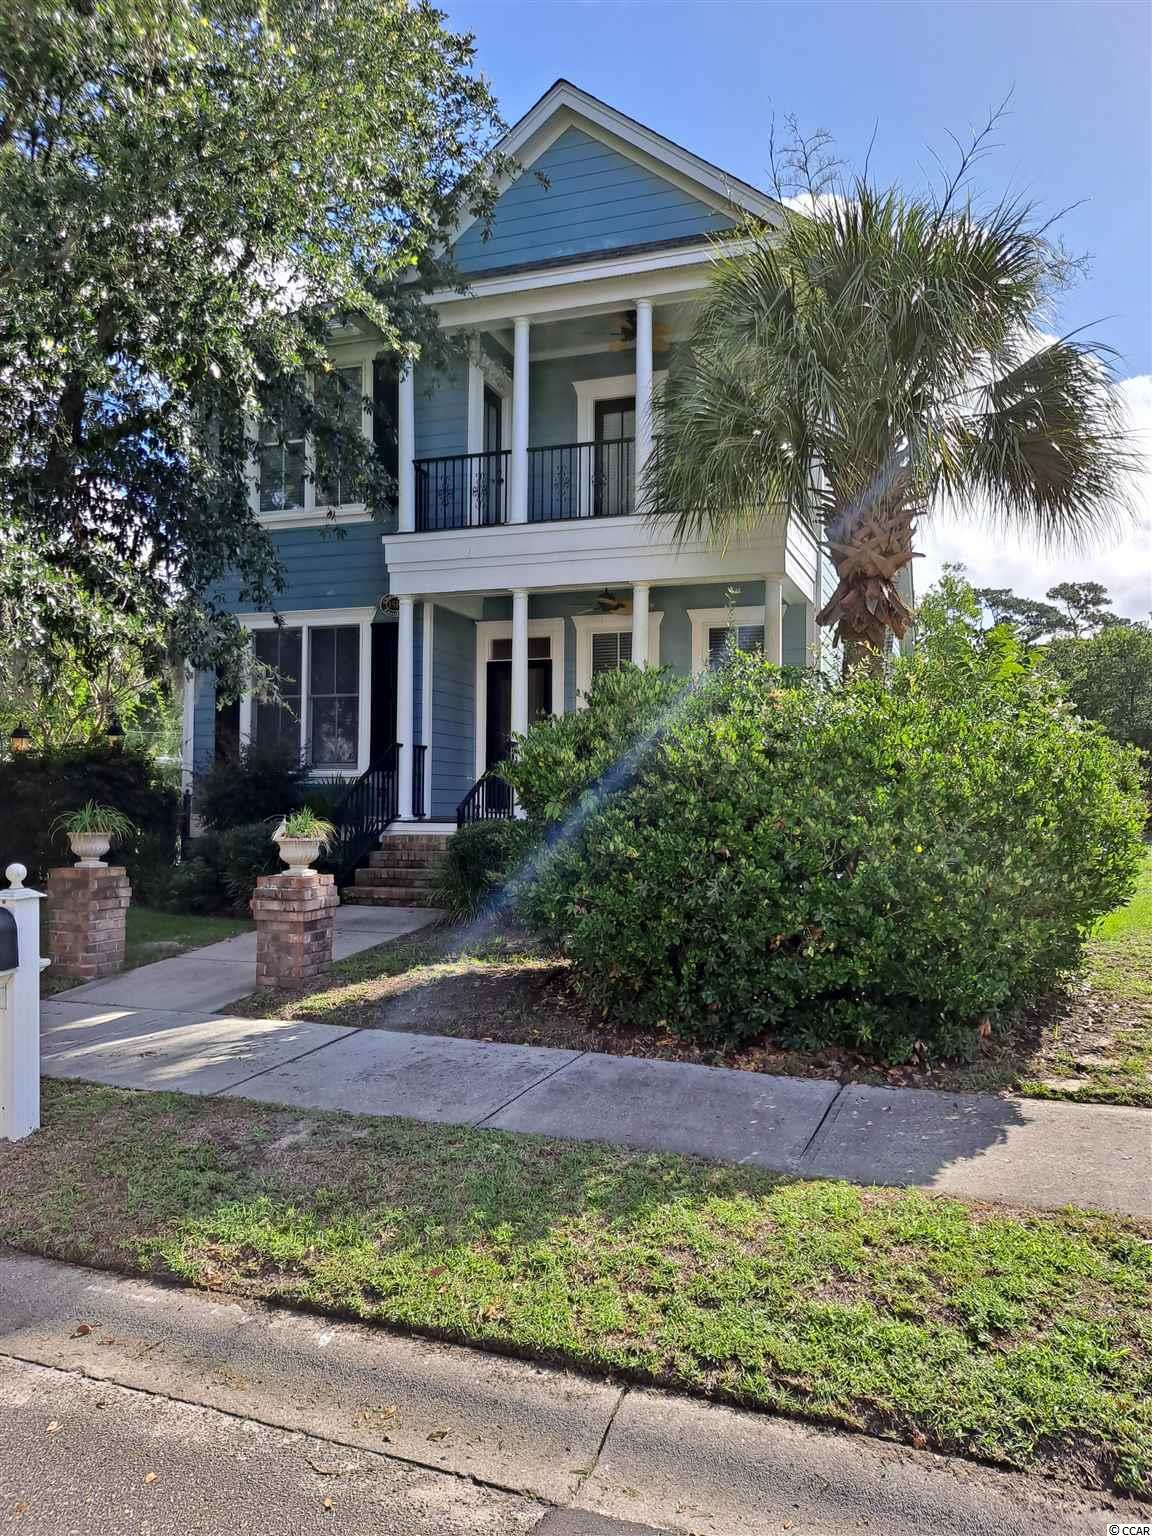 Don't miss out on this stunning and immaculate Charleston / Low Country style home located in the marsh front community of Charleston Landing in Cherry Grove. Owners have used the home as a second vacation home and it has never been rented. Every thing in the home has been renovated and/or replaced within this past year. Hard wood floors throughout living, dining and great room on the first floor. New carpet in the 2 upstairs bedrooms that open up to the upstairs porch. This home comes completely furnished with an upscale furniture package. Great room is enormous with a 20 ft. ceiling and built-in wet bar. It also features a remote security system with state of the art cameras and electronics. Enjoy sitting on your front porch or your 2nd floor porch while sipping your morning coffee. Your gated private courtyard is perfect for entertaining. The pool and clubhouse have spectacular views of the Cherry Grove marsh and you are only minutes from the beach. This is an ideal home for the family that has discerning taste. Needless to say, this won't stay on the market long.